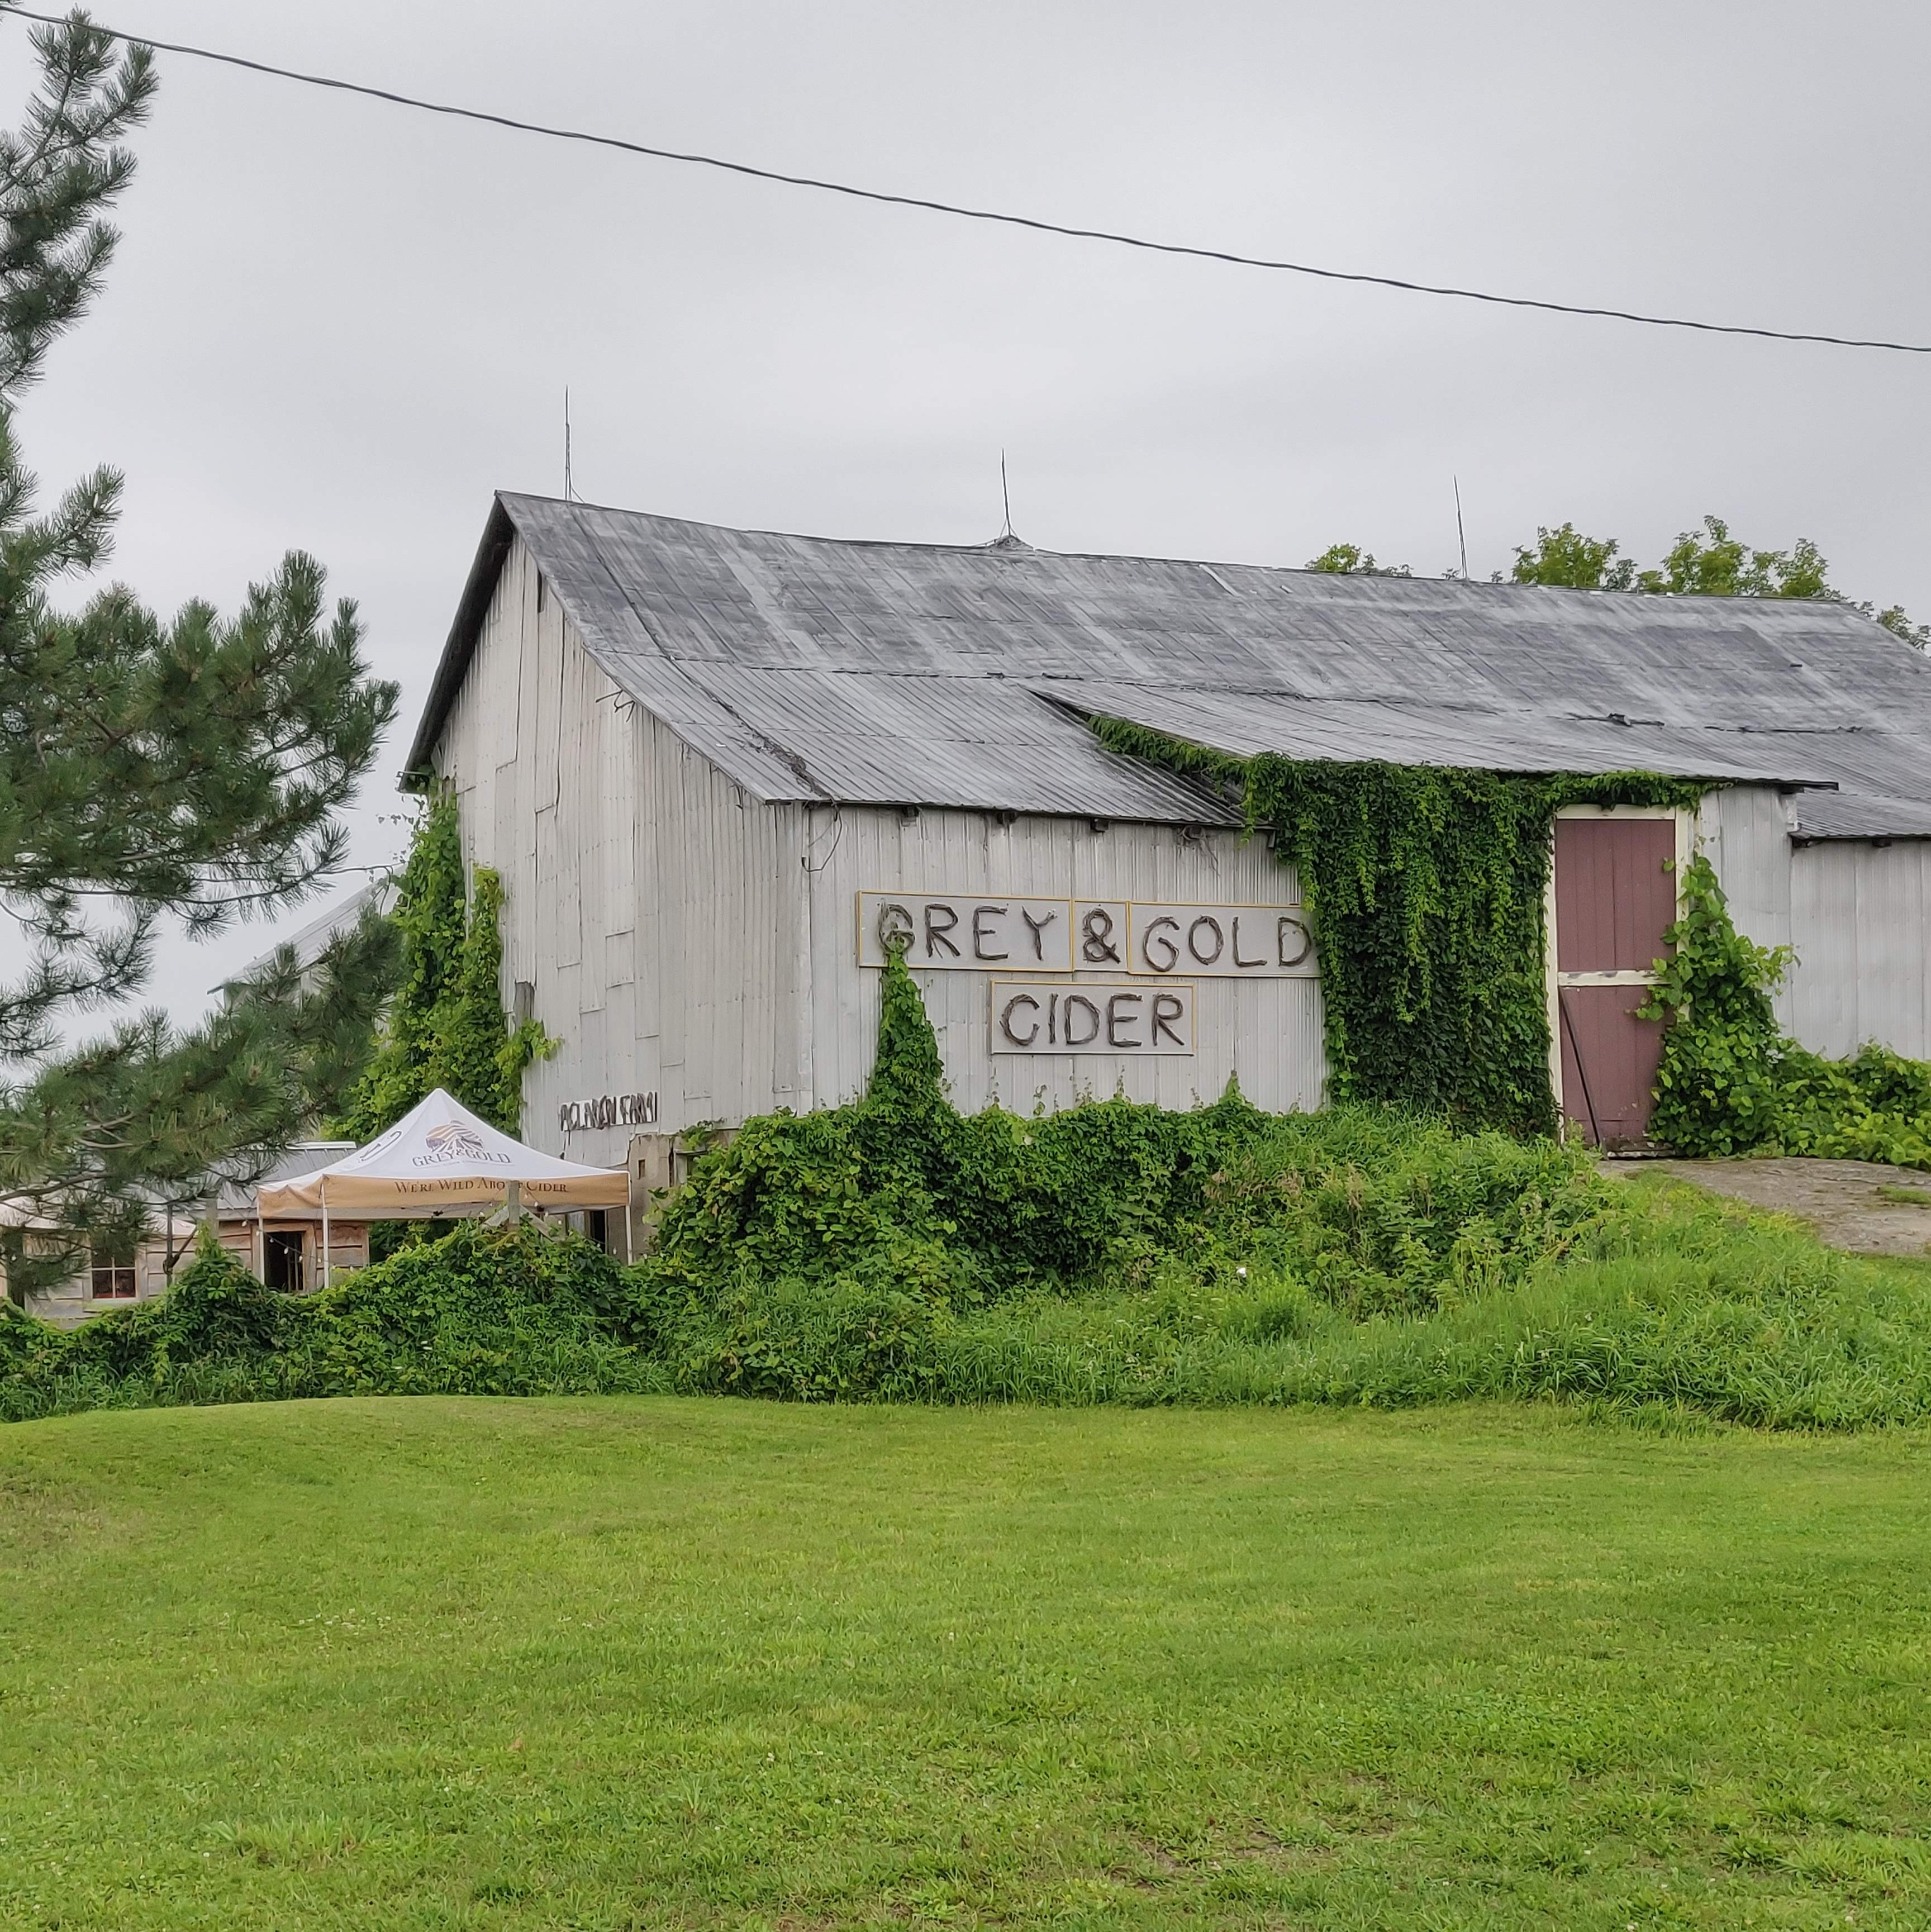 A white barn with a black roof. There are vines climbing up the sides, Gray & Gold Cider is on a sign on the side of the barn. To the left of the lower side of the barn is the customer tasting area and bottle room.